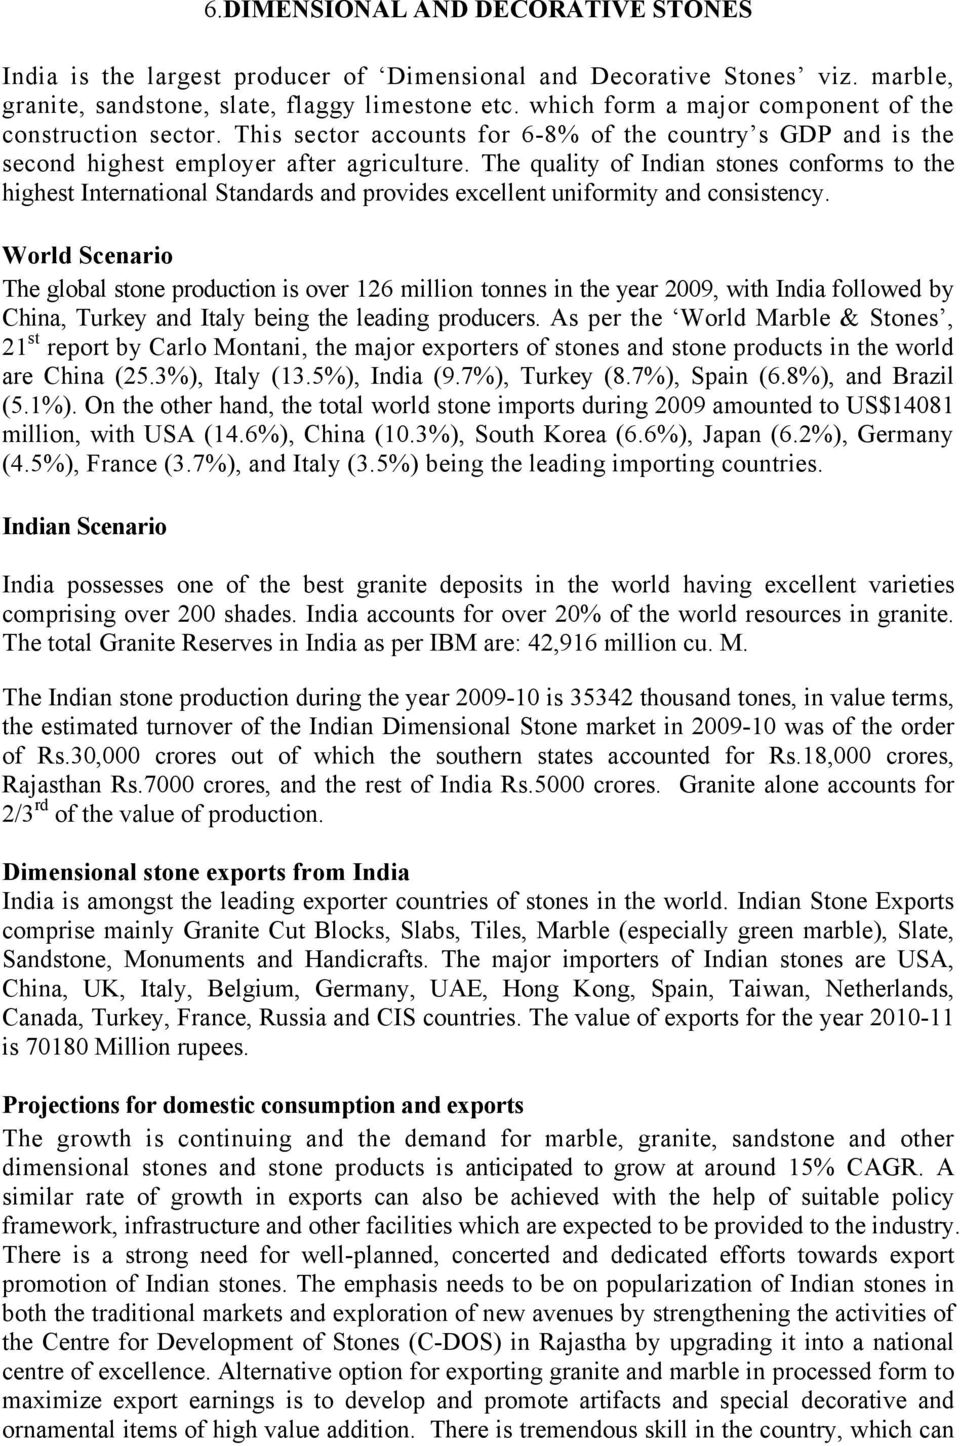 REPORT OF SUB- GROUP-II ON METALS AND MINERALS STRATEGY BASED UPON